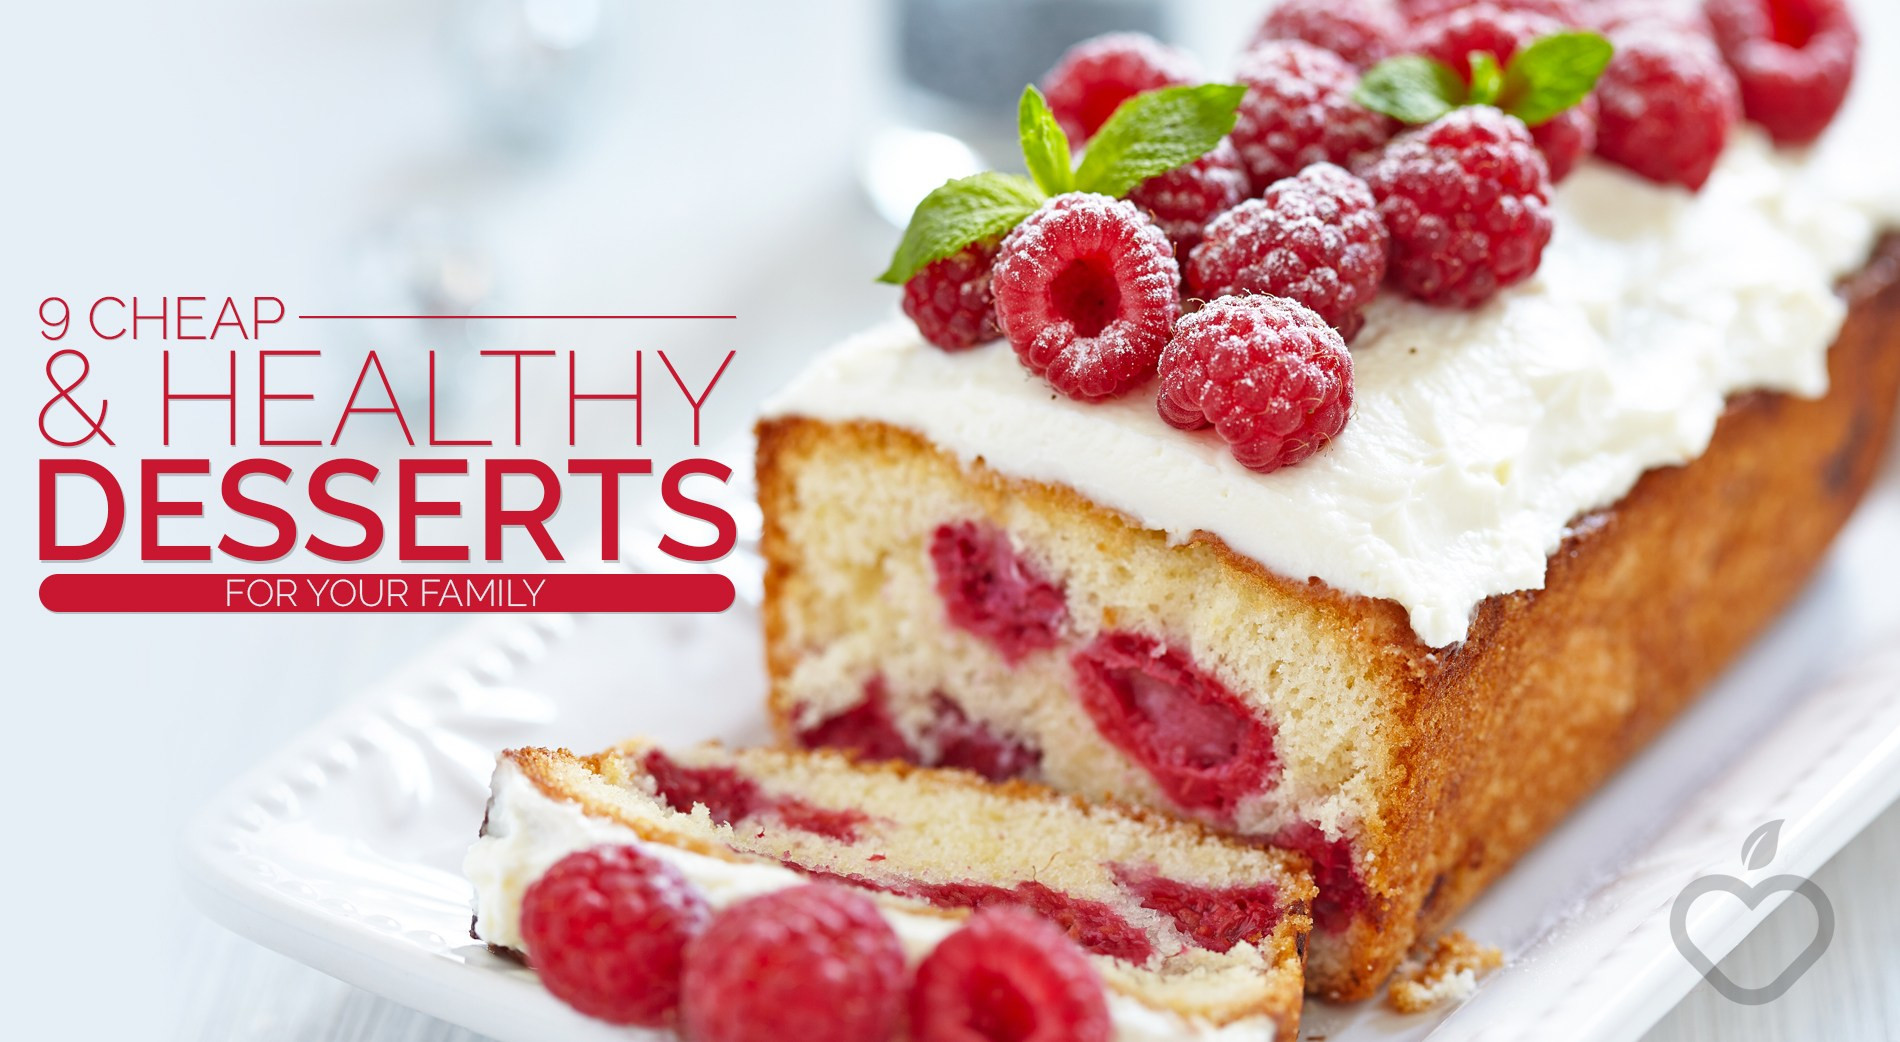 Healthy Dessert Blog  9 Cheap And Healthy Desserts For Your Family ⋆ New York